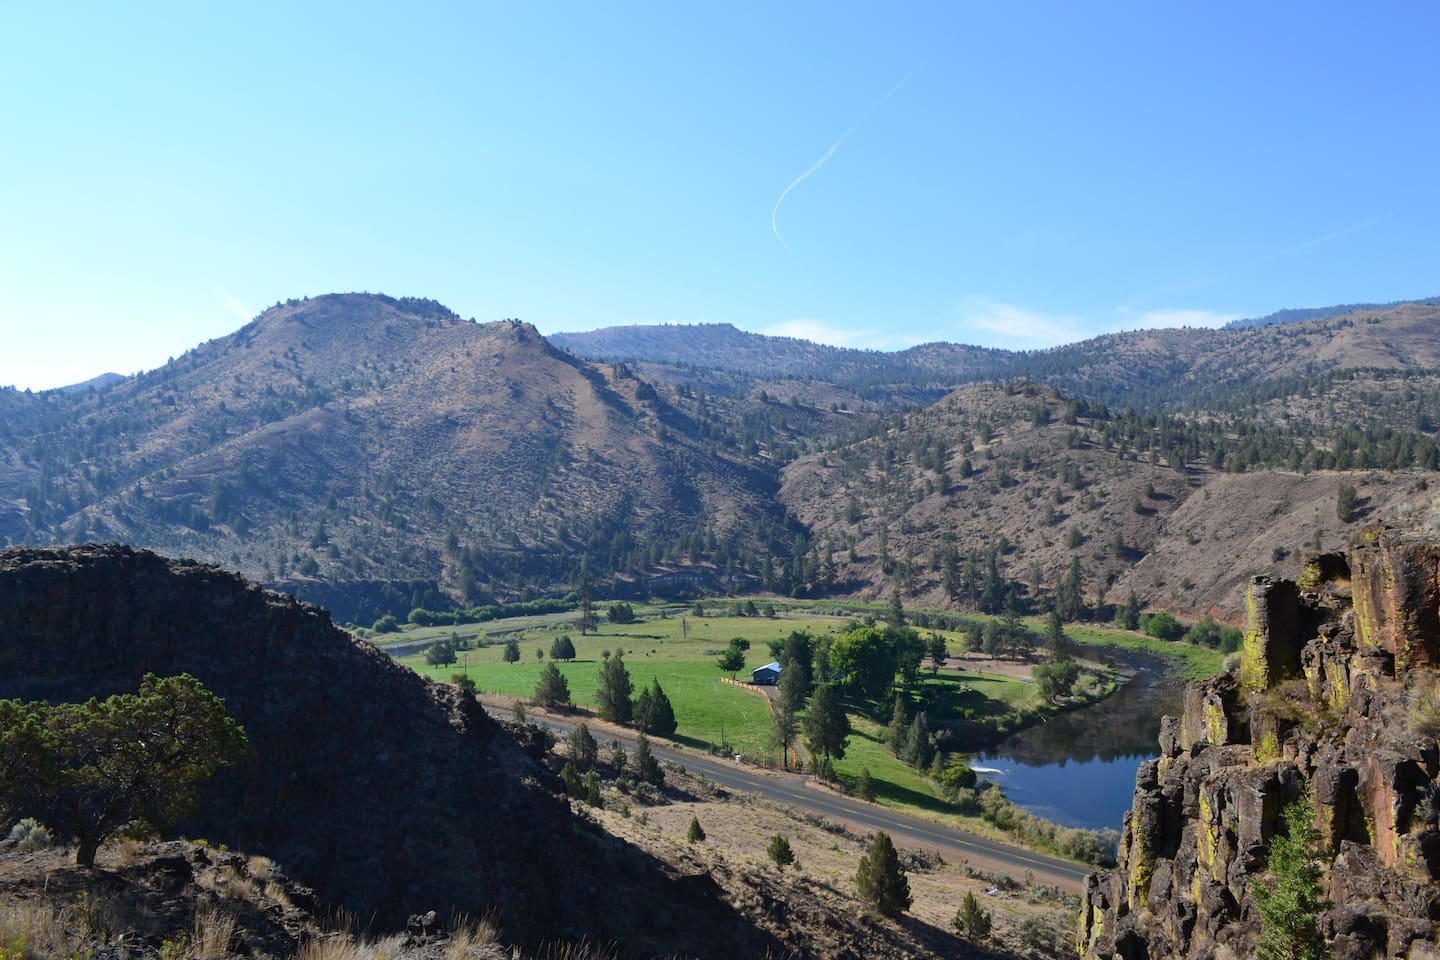 Overlooking the ranch from the rimrocks that is accessible by a foot trail to our guest.